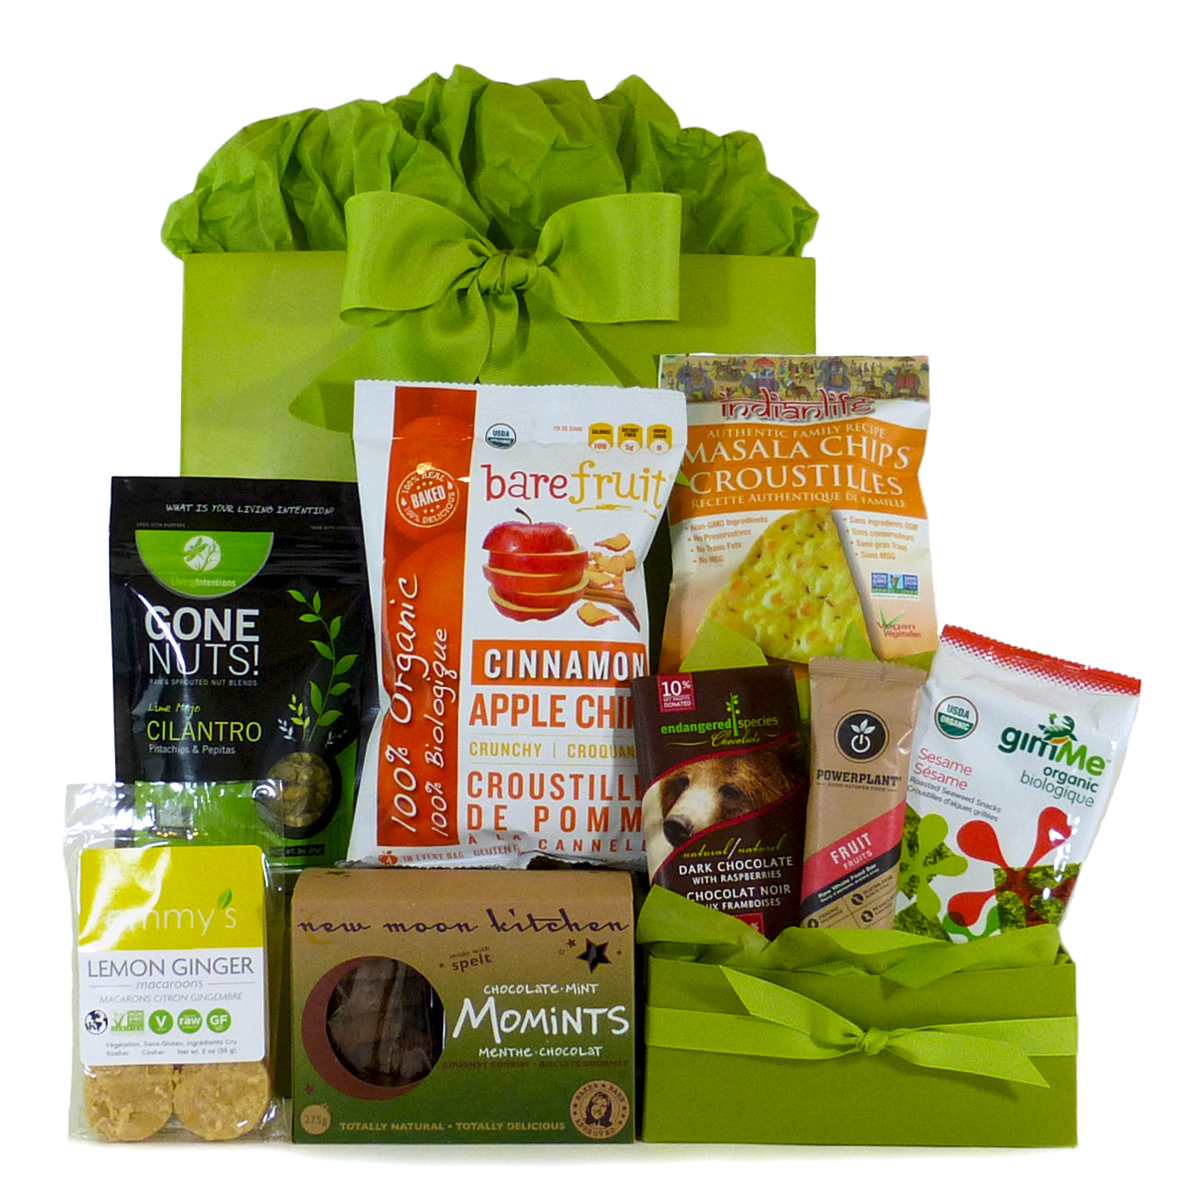 Gourmet gift baskets for food lovers snacks for the vegan gourmet snacks for the vegan gourmet gift basket negle Gallery